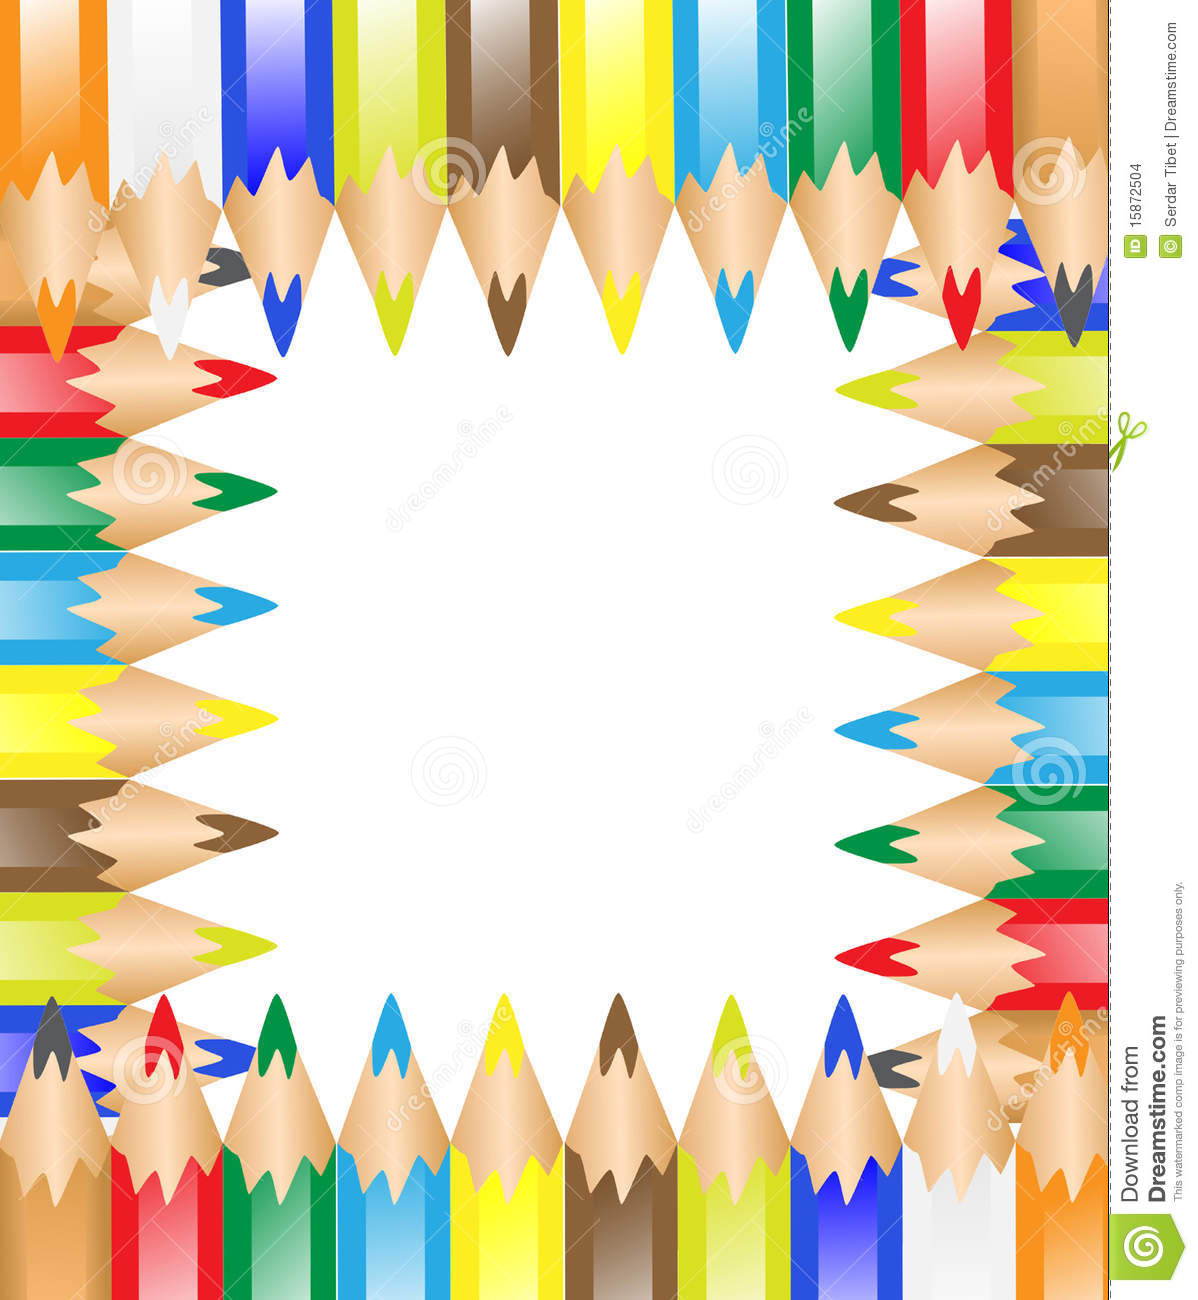 Pen Frame Stock Images - Image: 15872504